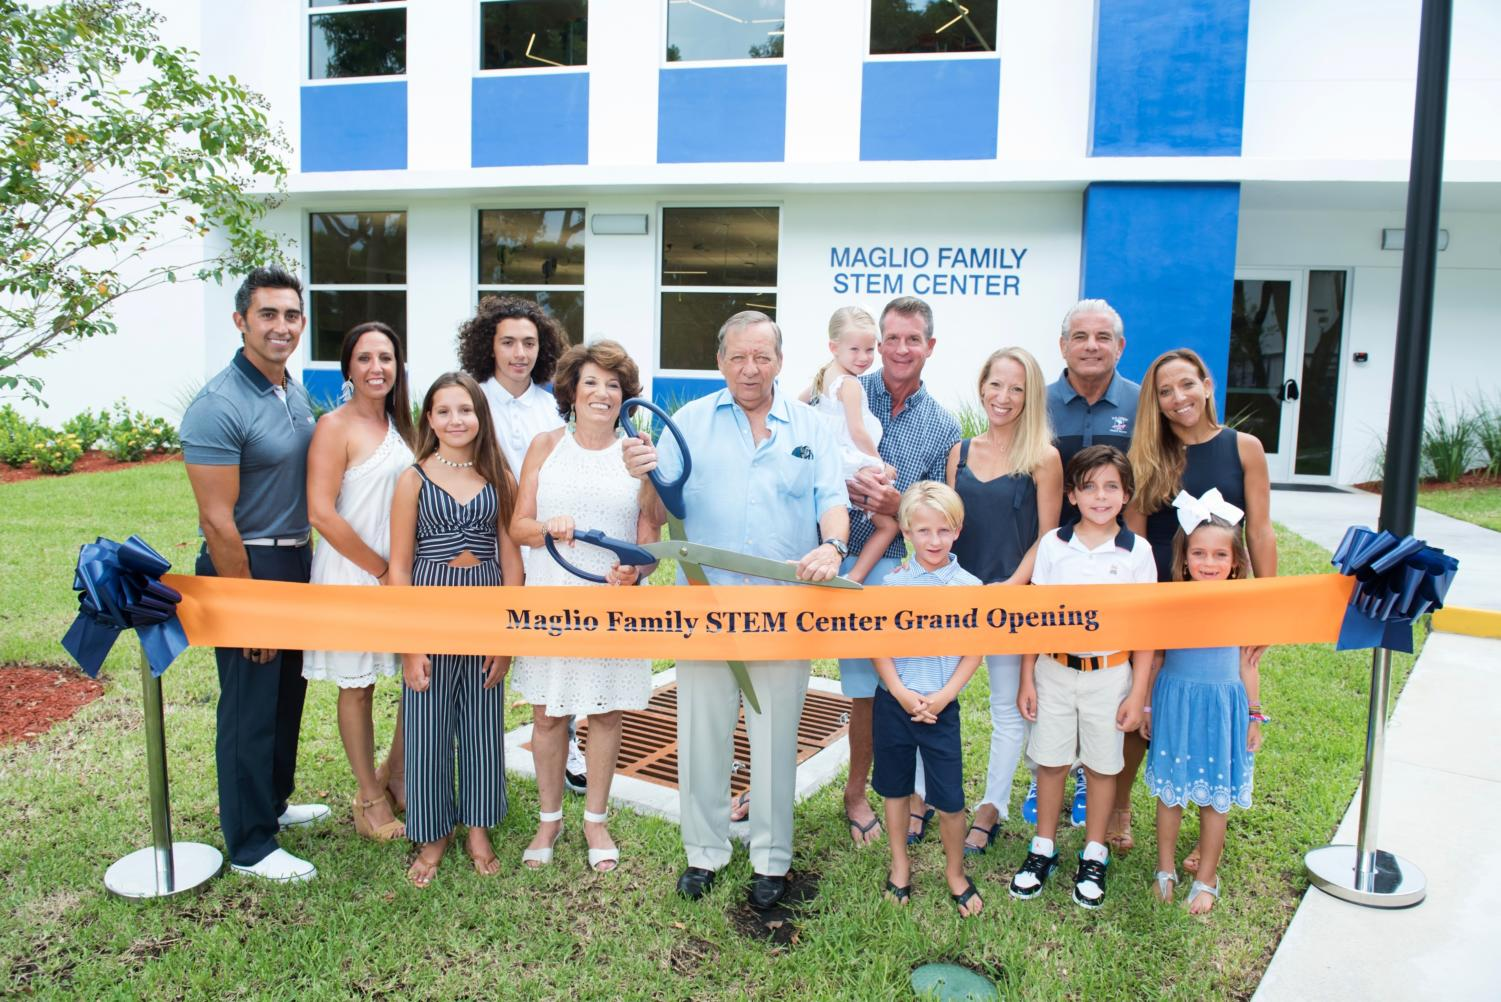 The Maglio and Grande families prepare to cut the ribbon which officially opened the STEM center on August 11, 2019.